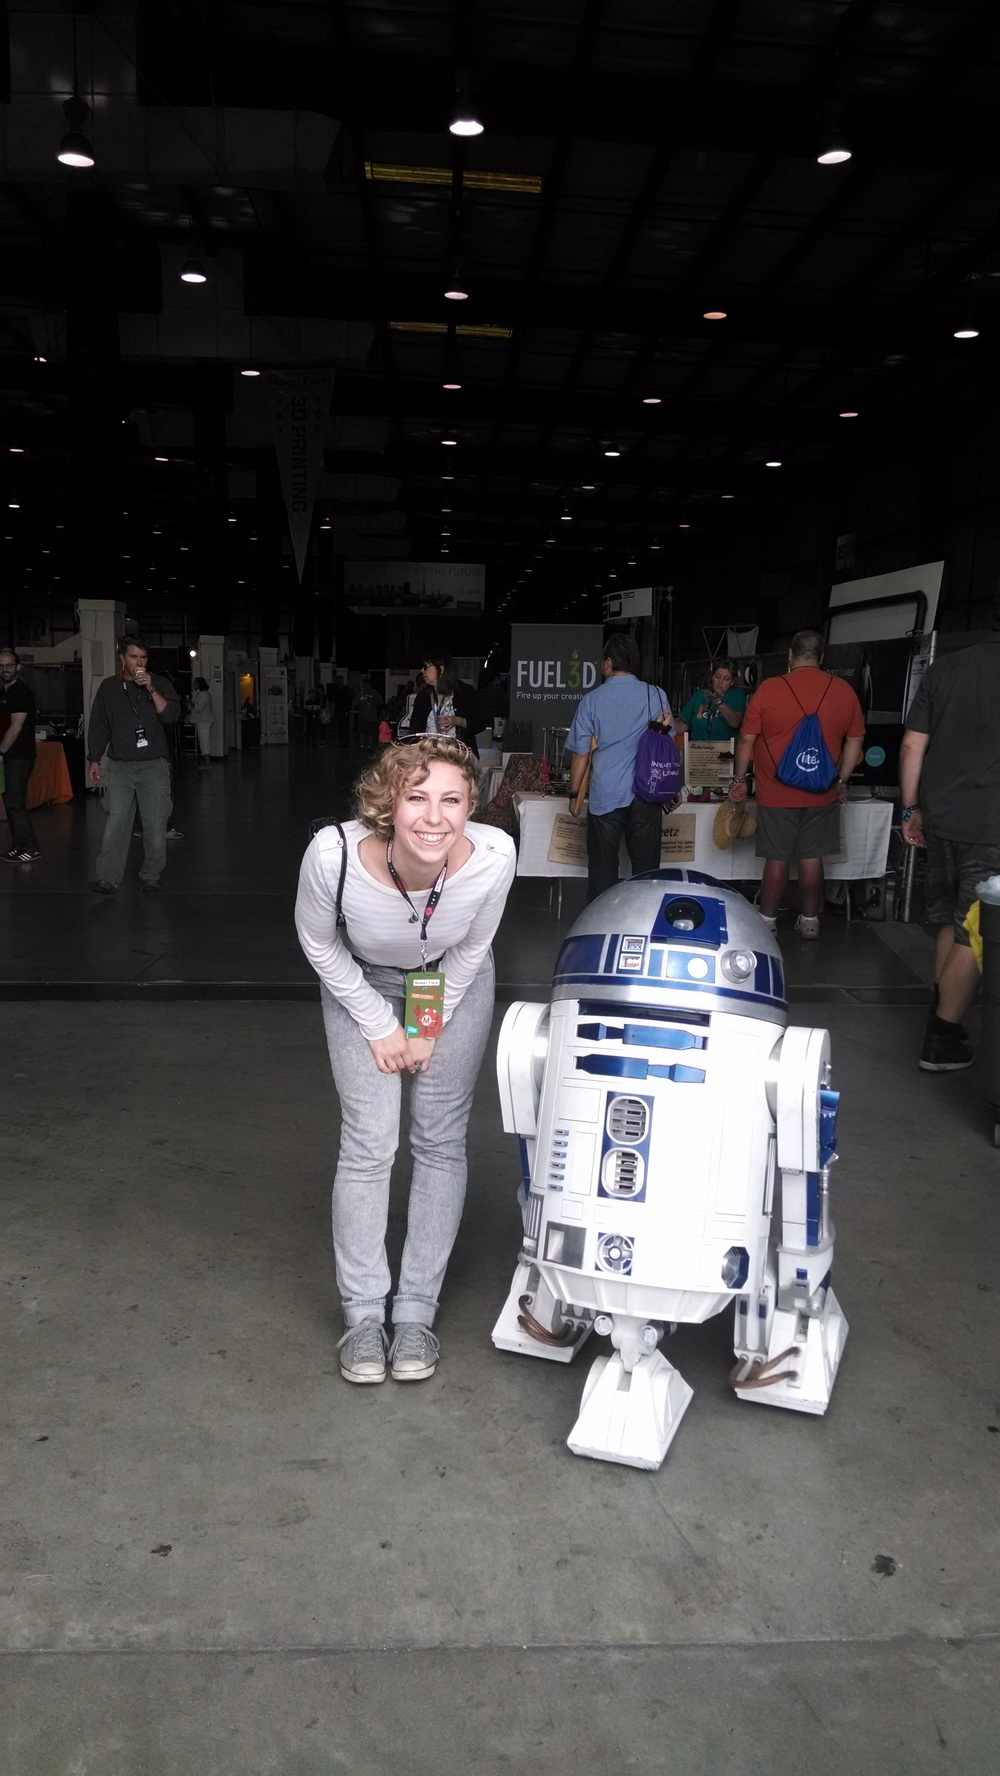 Alexis, thrilled to be meeting R2D2.